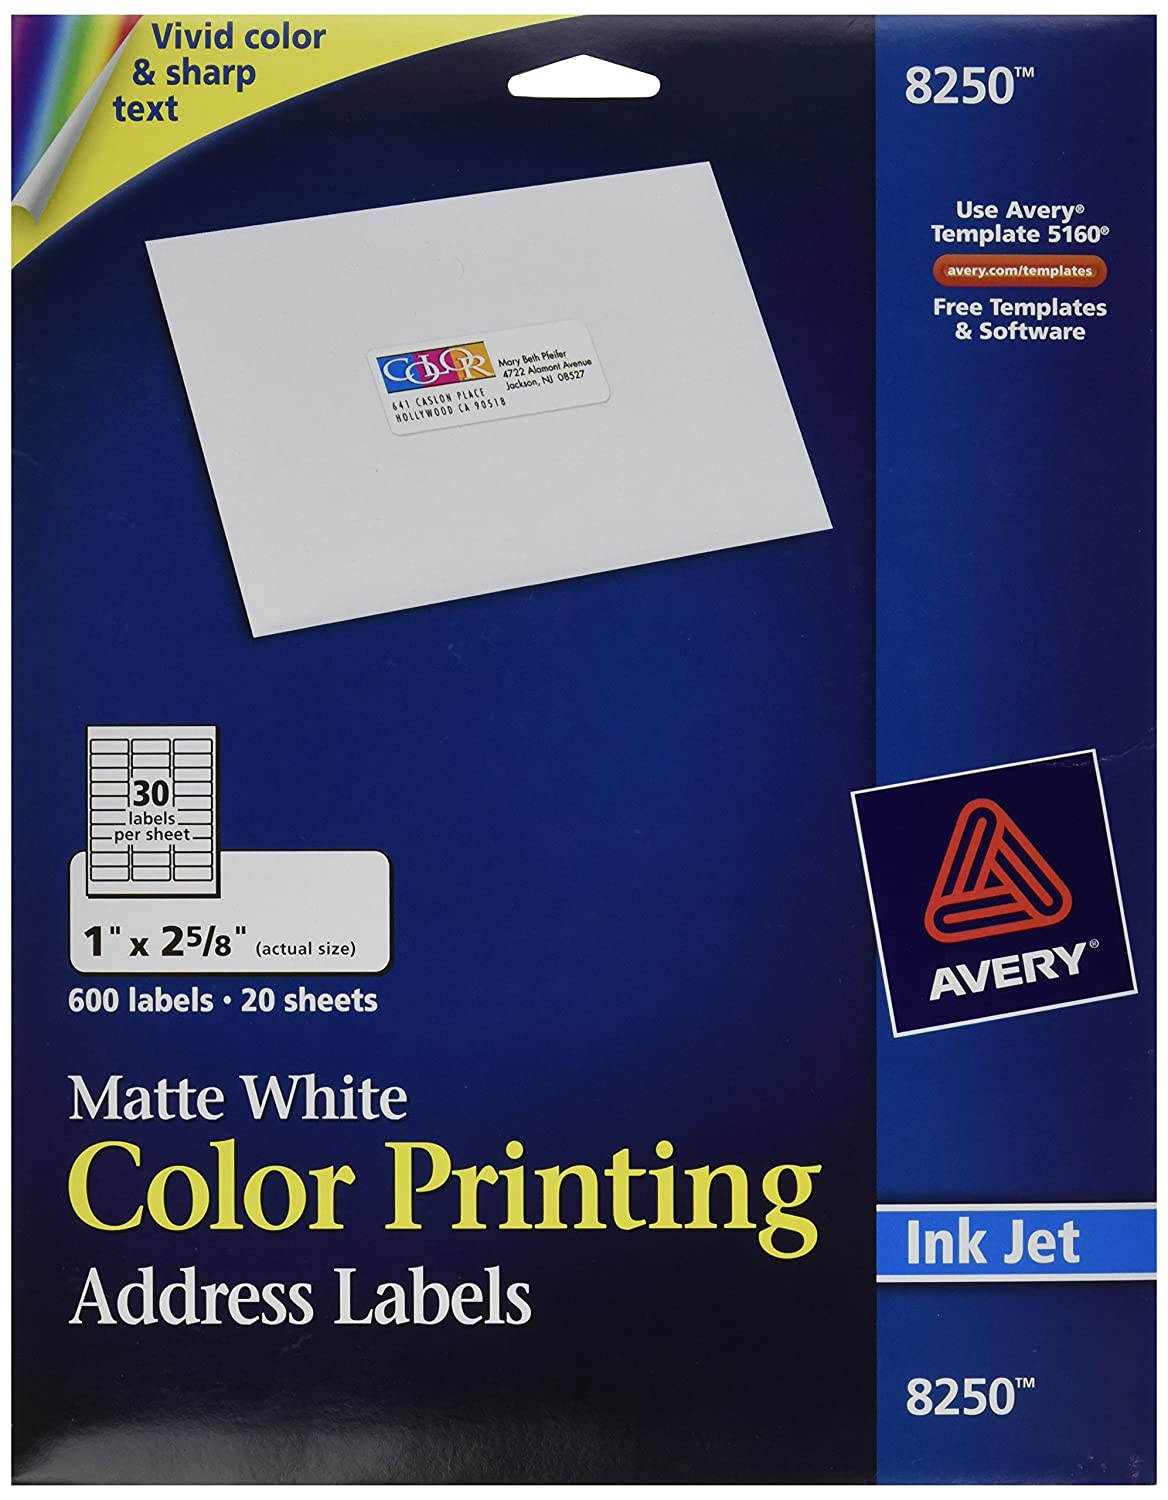 On Sale Avery Address Labels For Ink Jet Printers 8250 20 Sheets